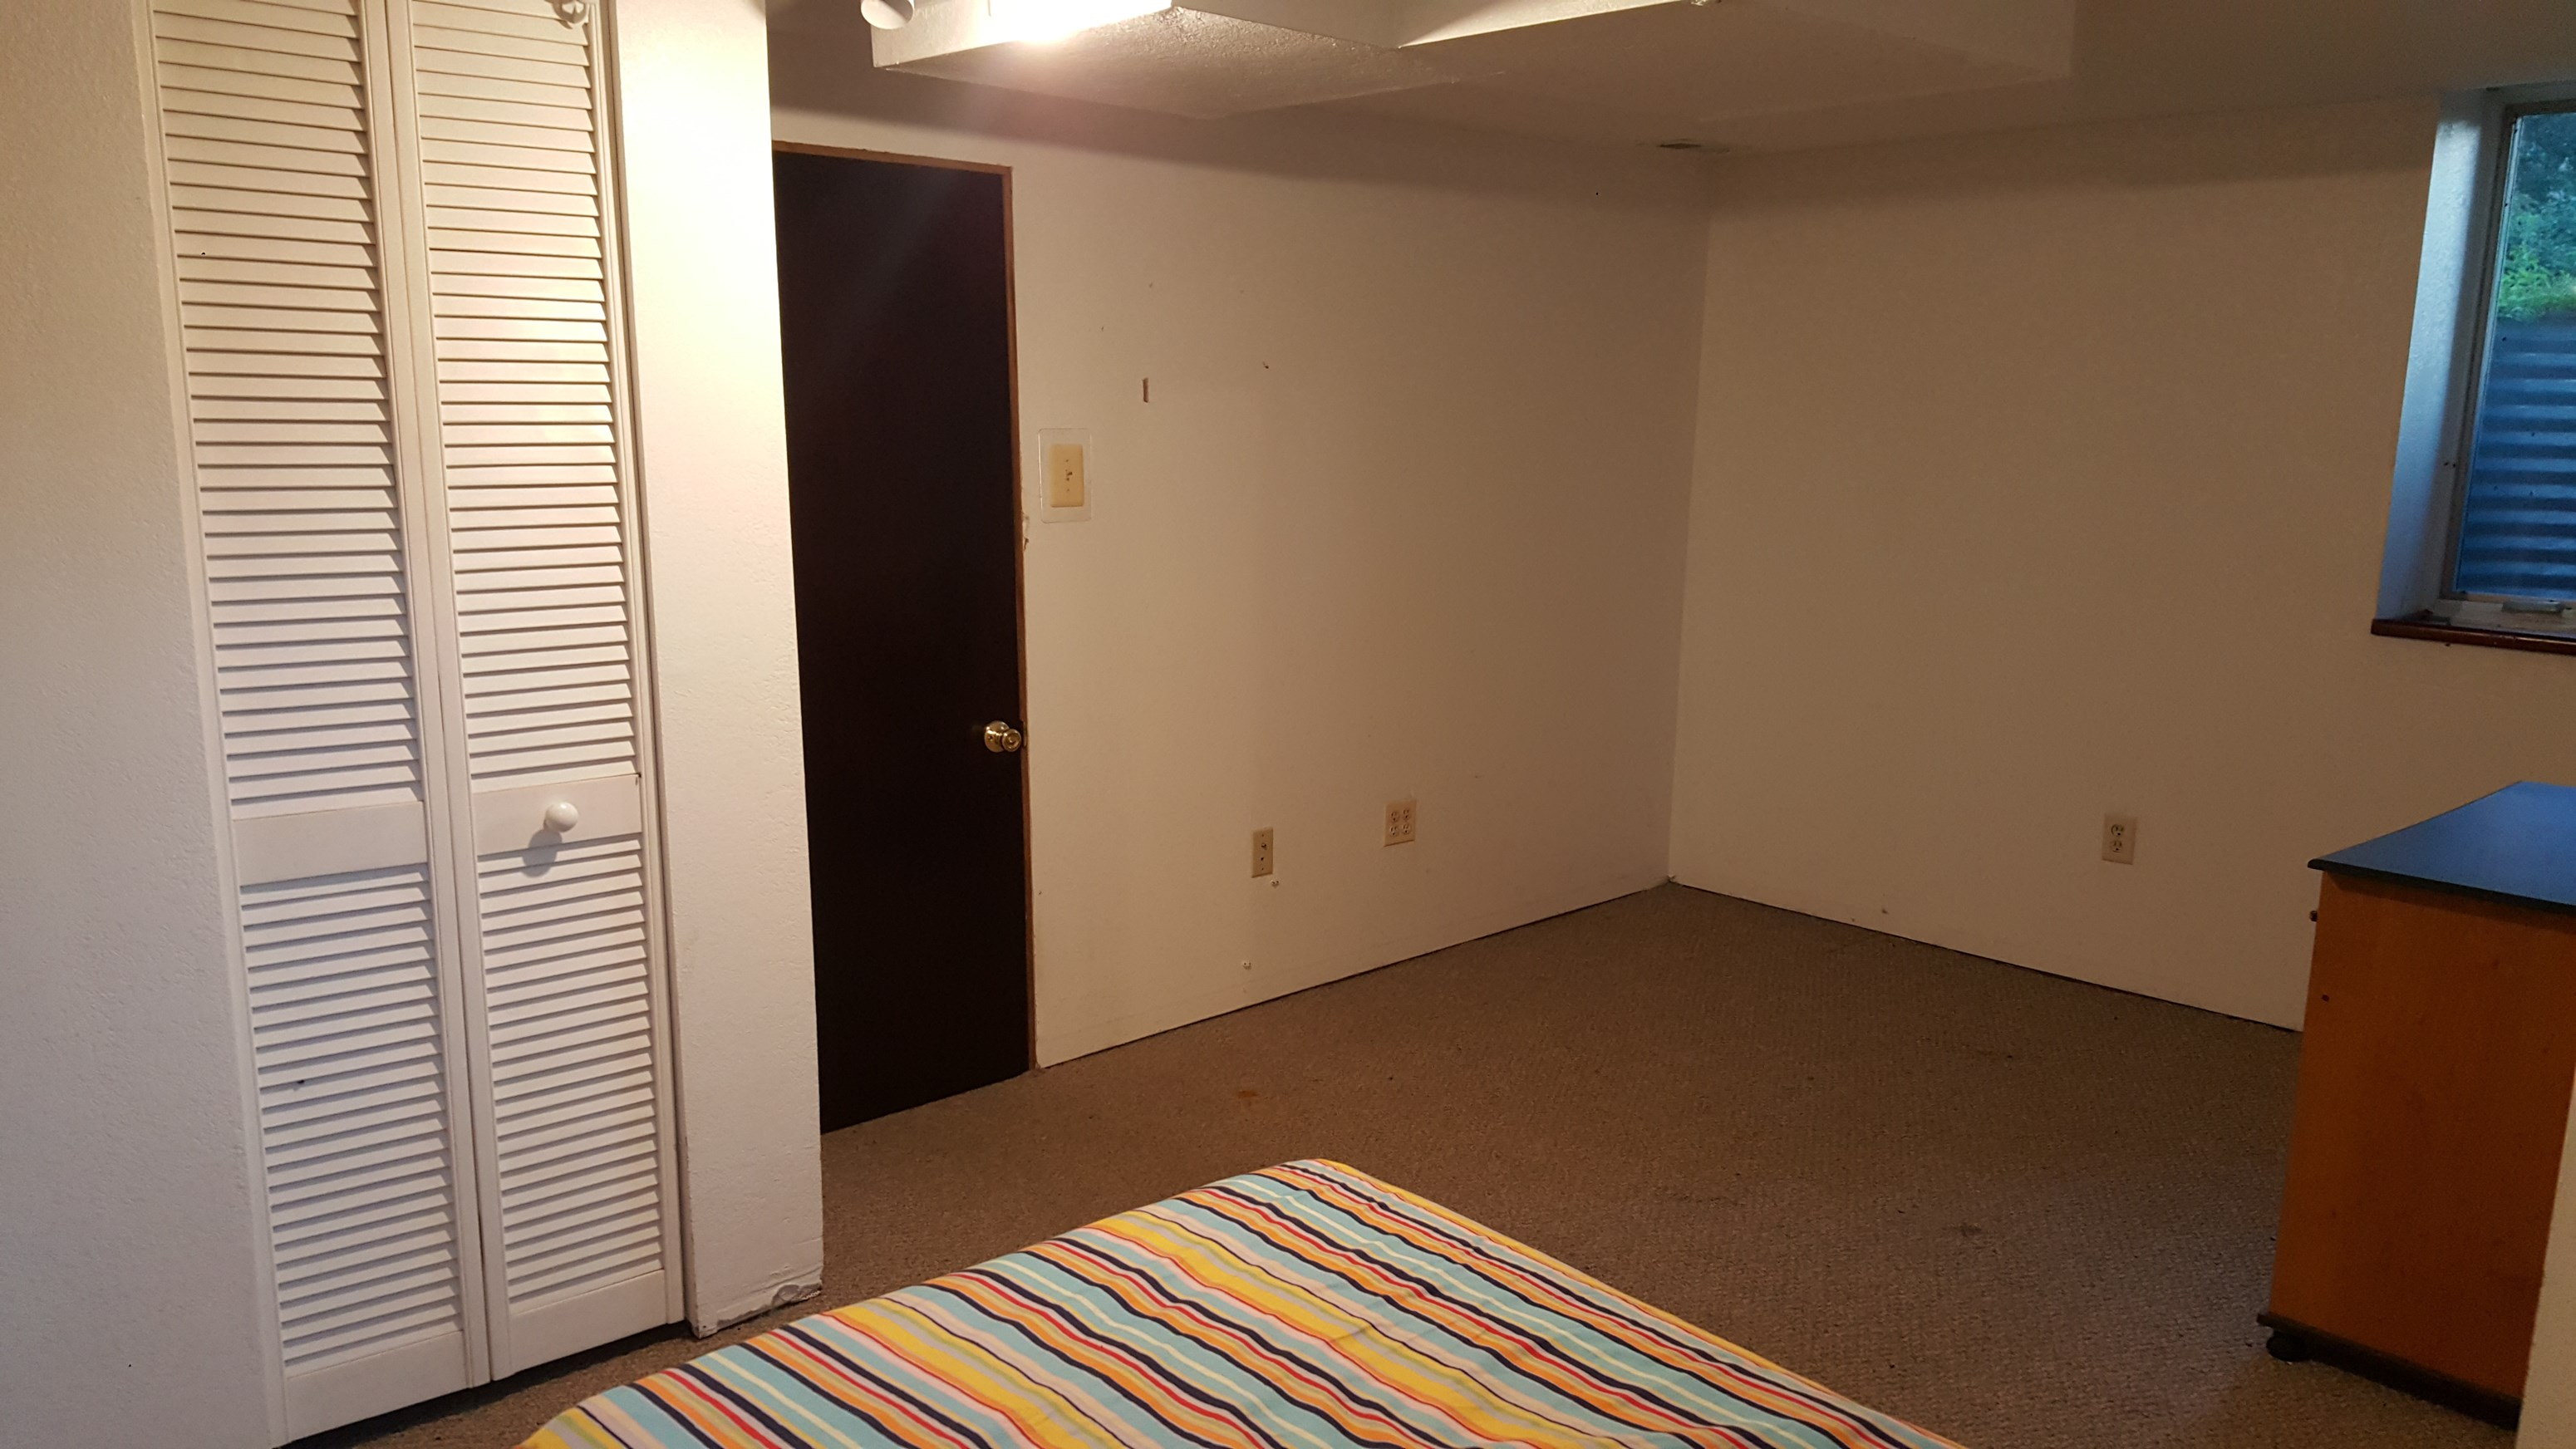 PRIVATE AND SHARED ROOMS AVAILABLE FOR RENT in Minneapolis